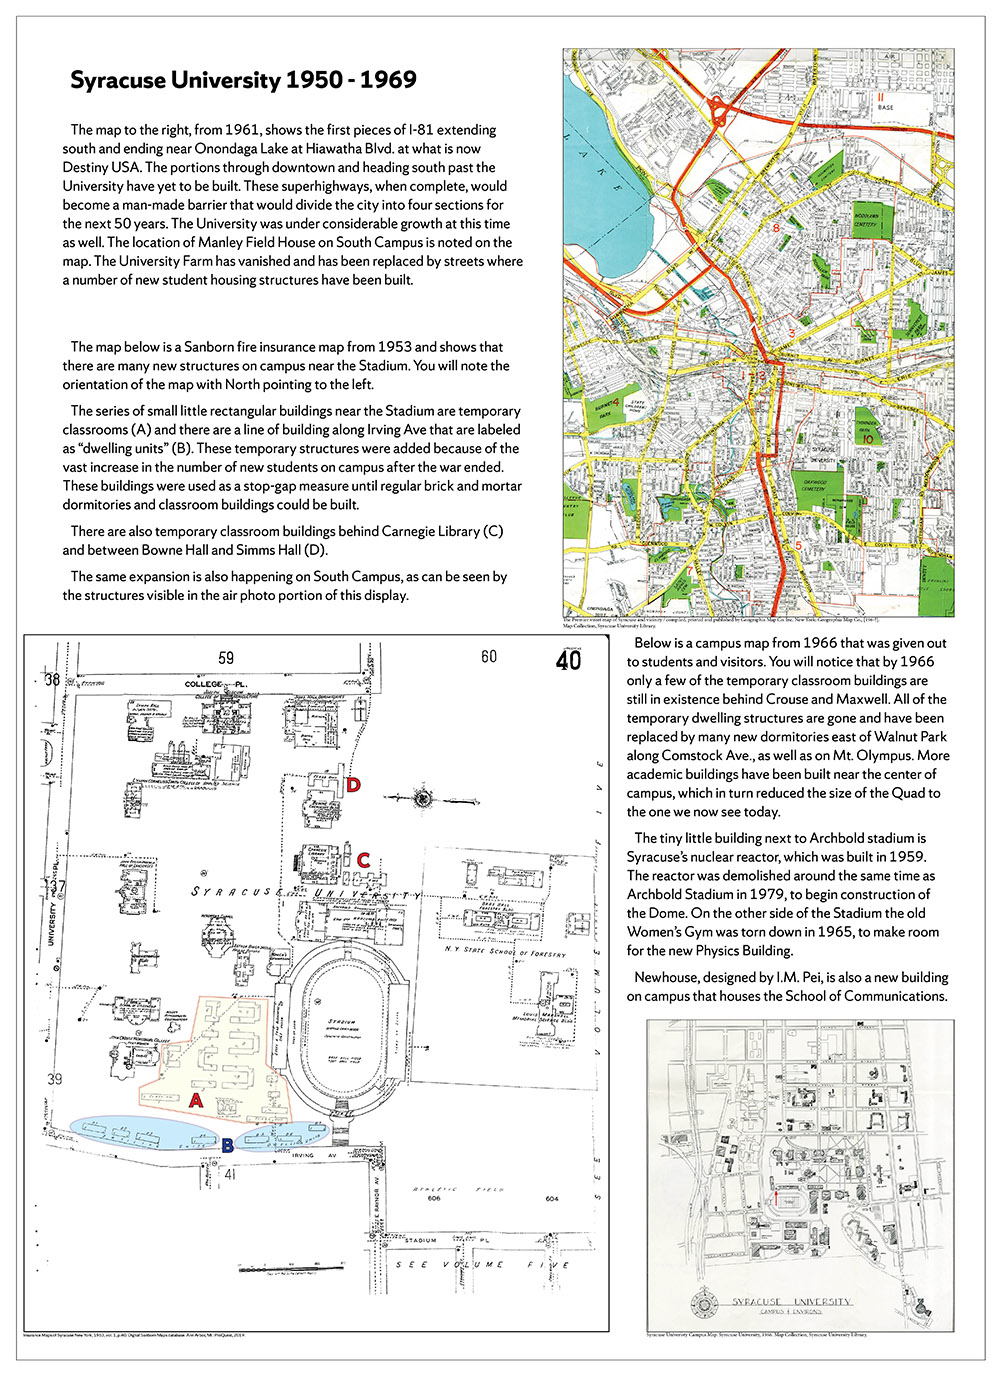 Syracuse University 150 years in maps – 1950-1969 poster